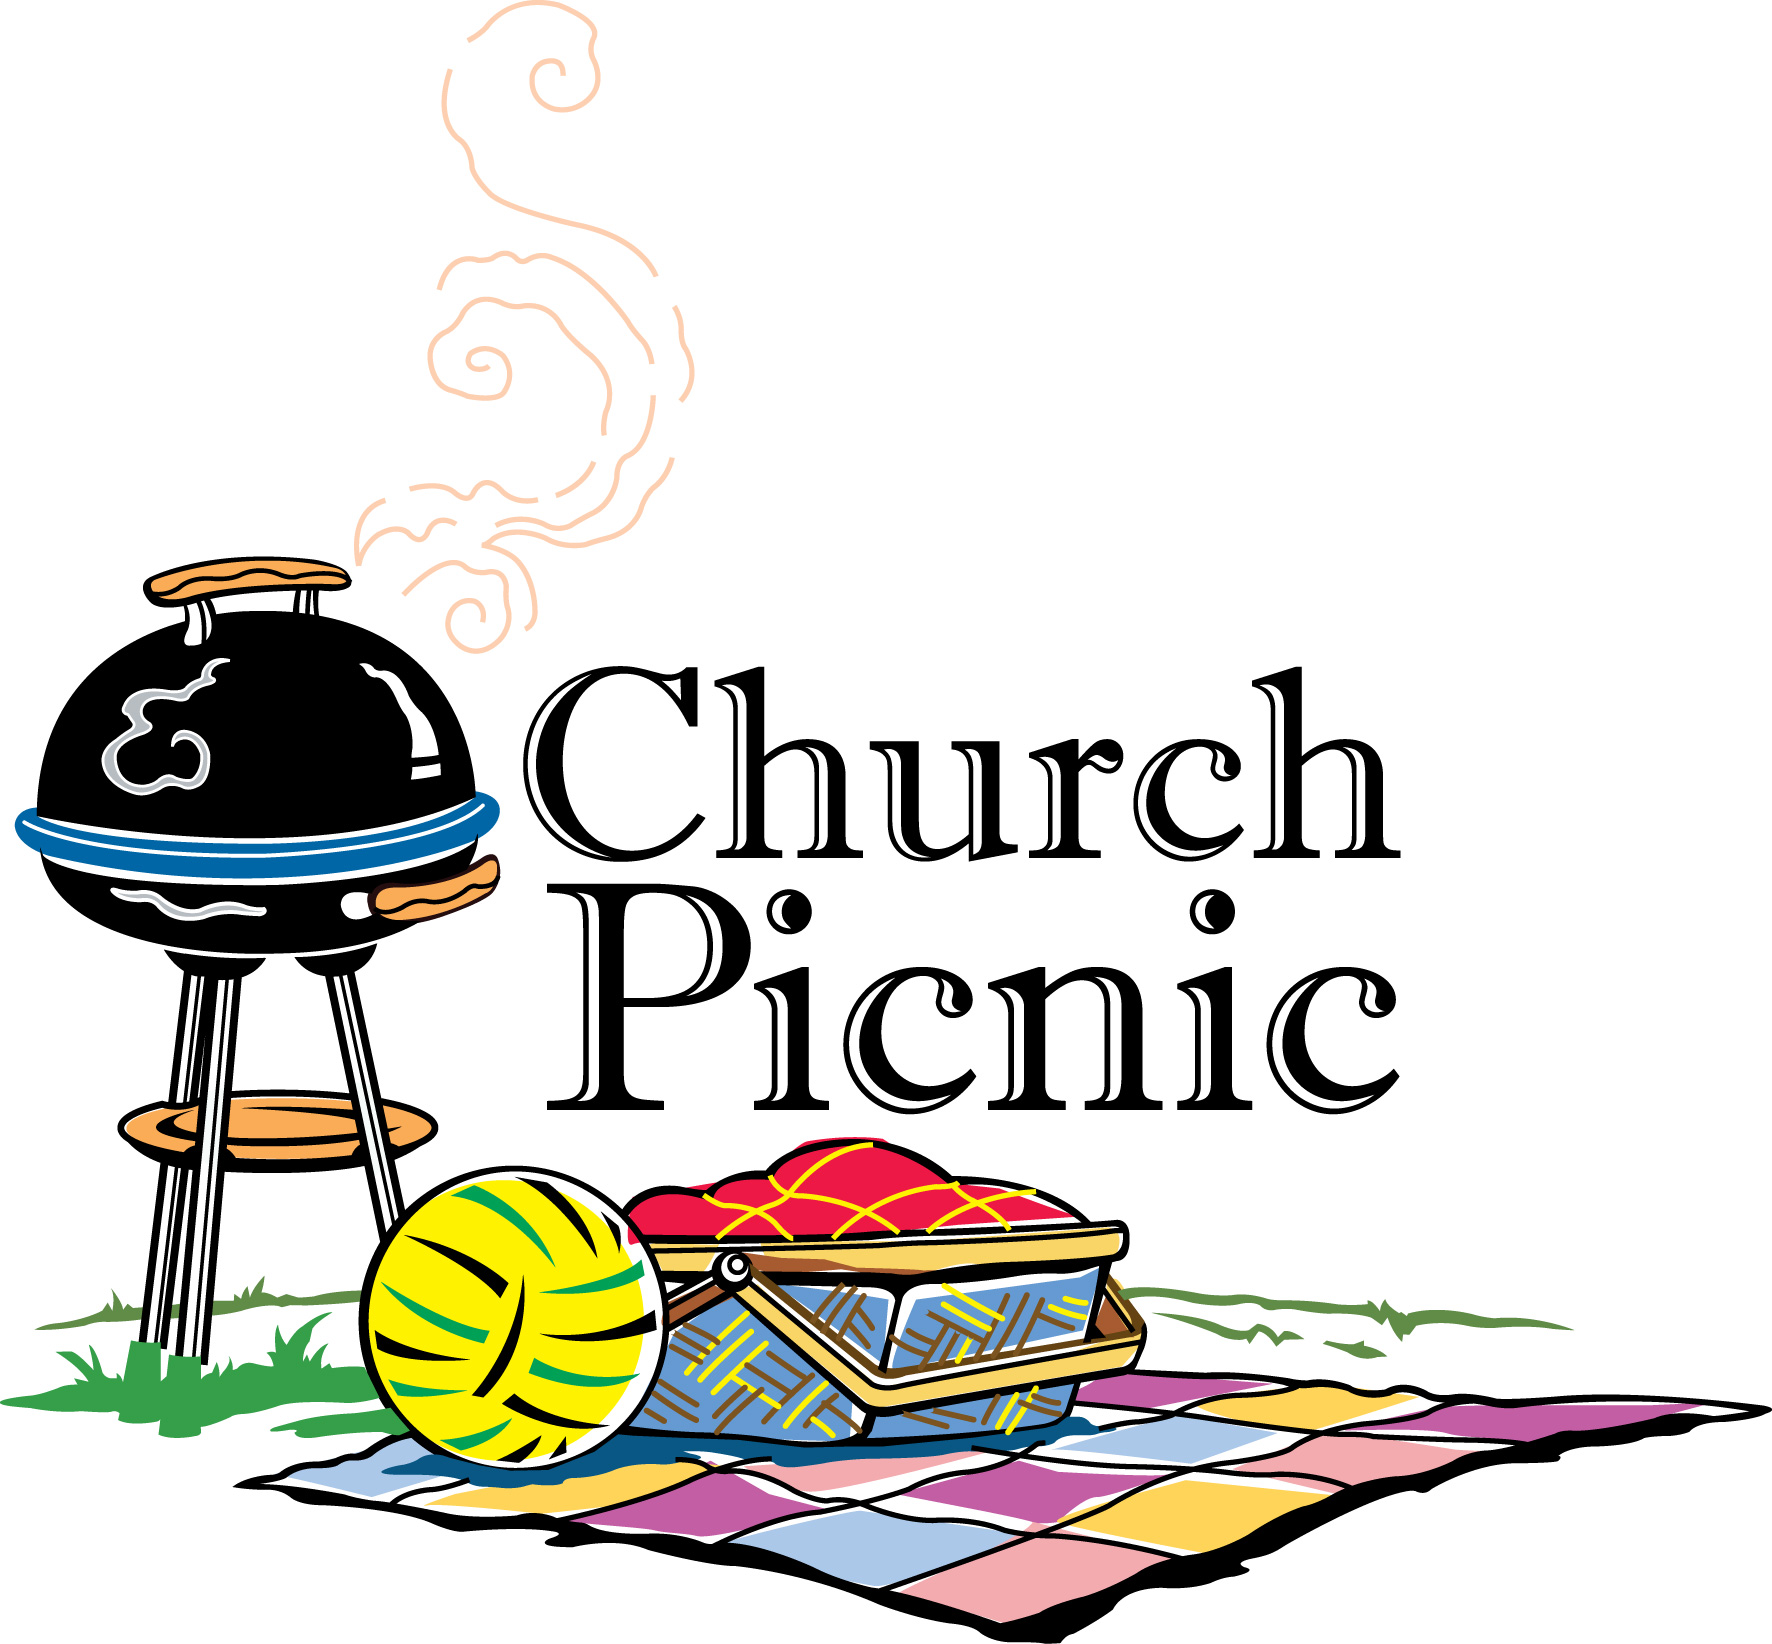 Free Summer Picnic Pictures, Download Free Clip Art, Free.